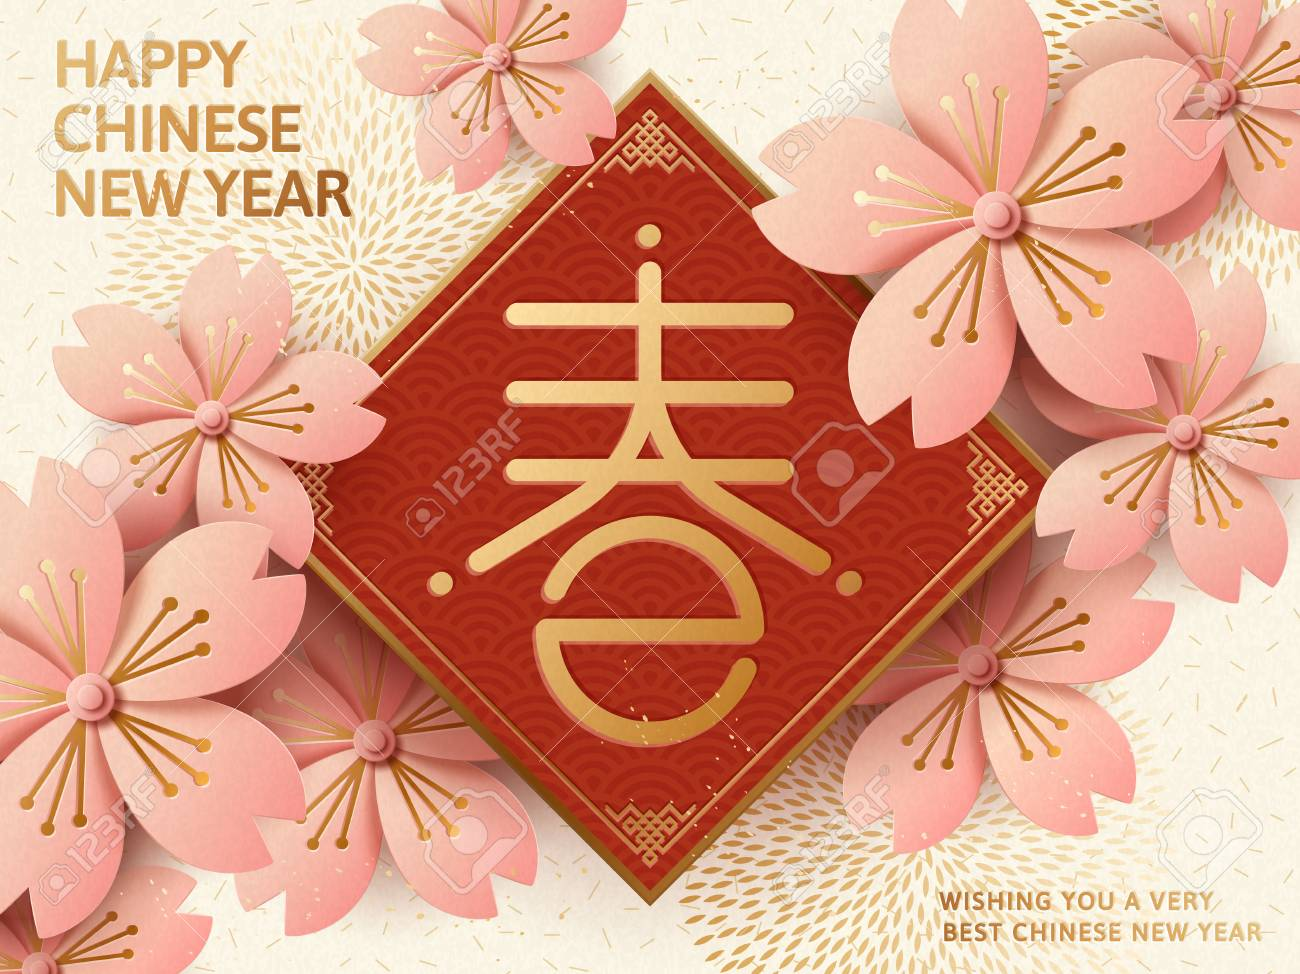 Elegant Chinese New Year Design Spring Couplet With Light Pink